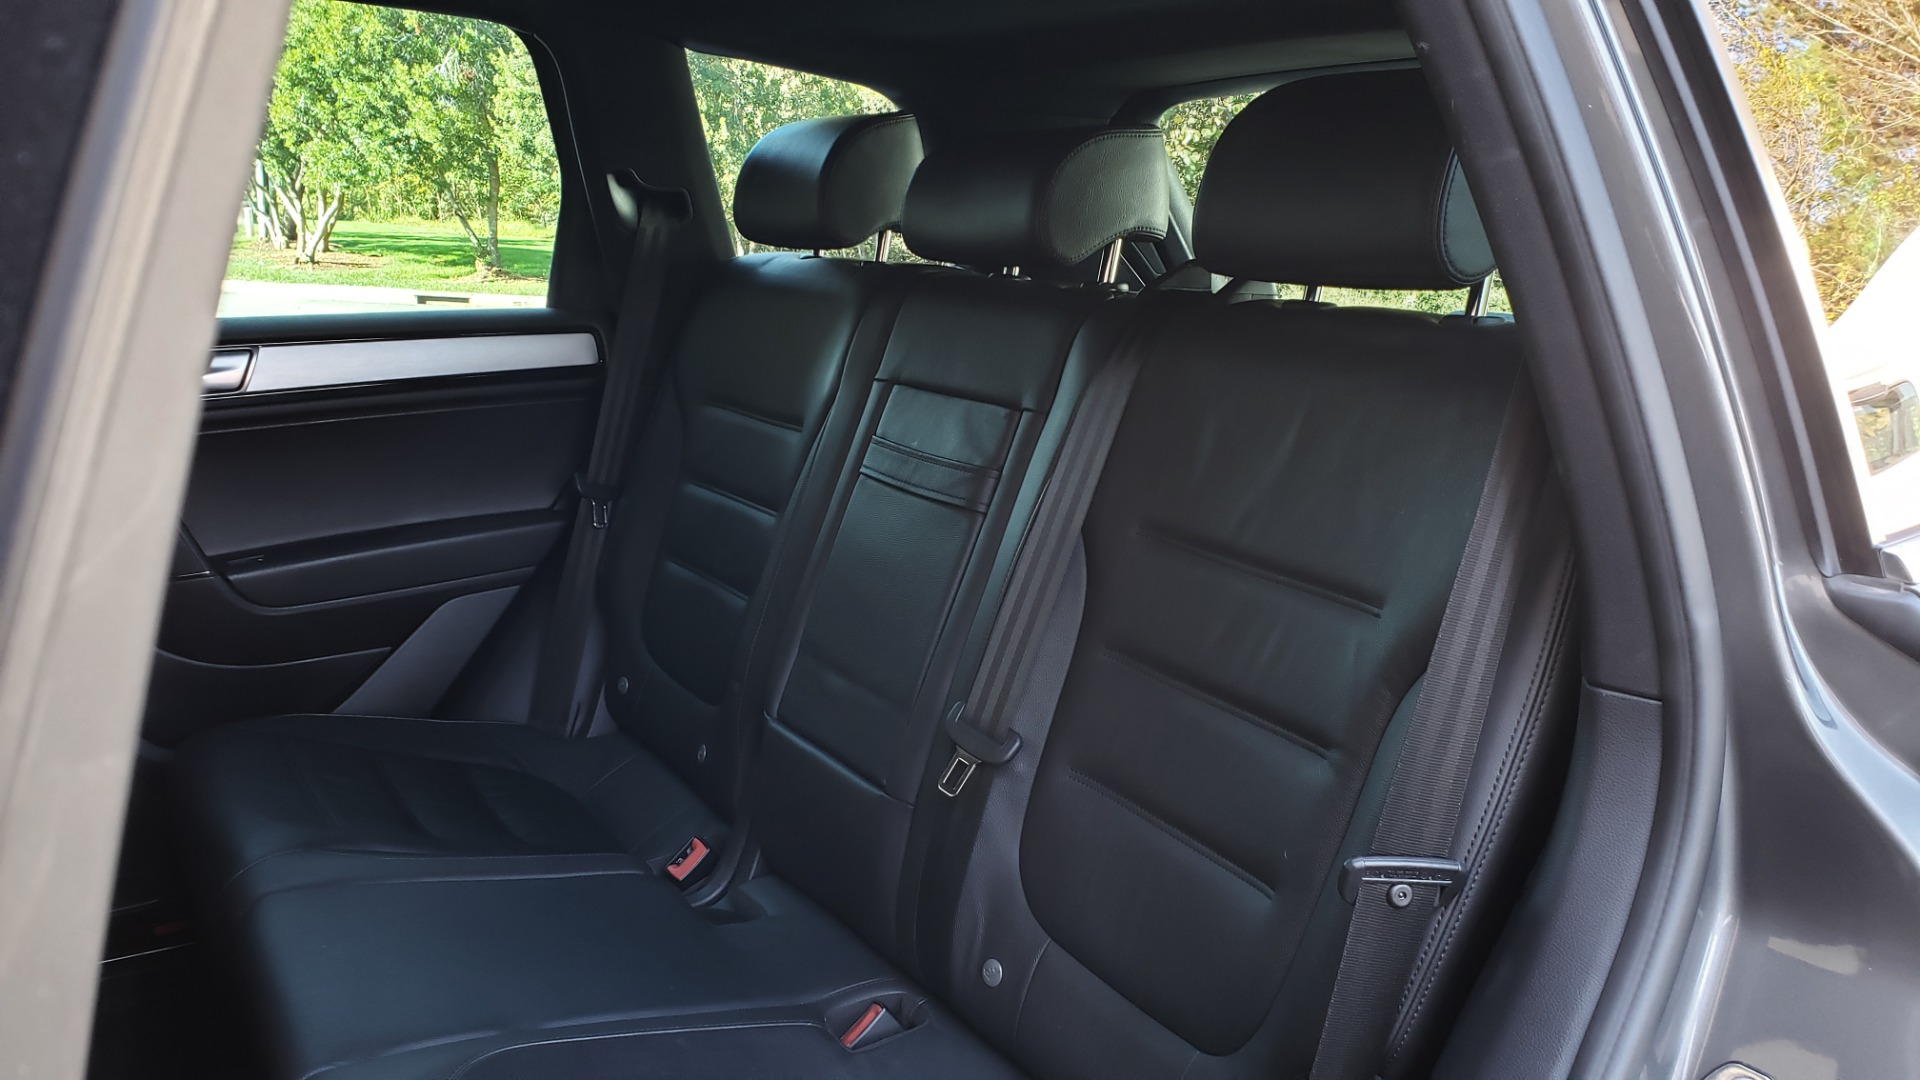 Used 2017 Volkswagen TOUAREG V6 WOLFSBURG EDITION / NAV / PANO-ROOF / ACC / REARVIEW for sale Sold at Formula Imports in Charlotte NC 28227 71